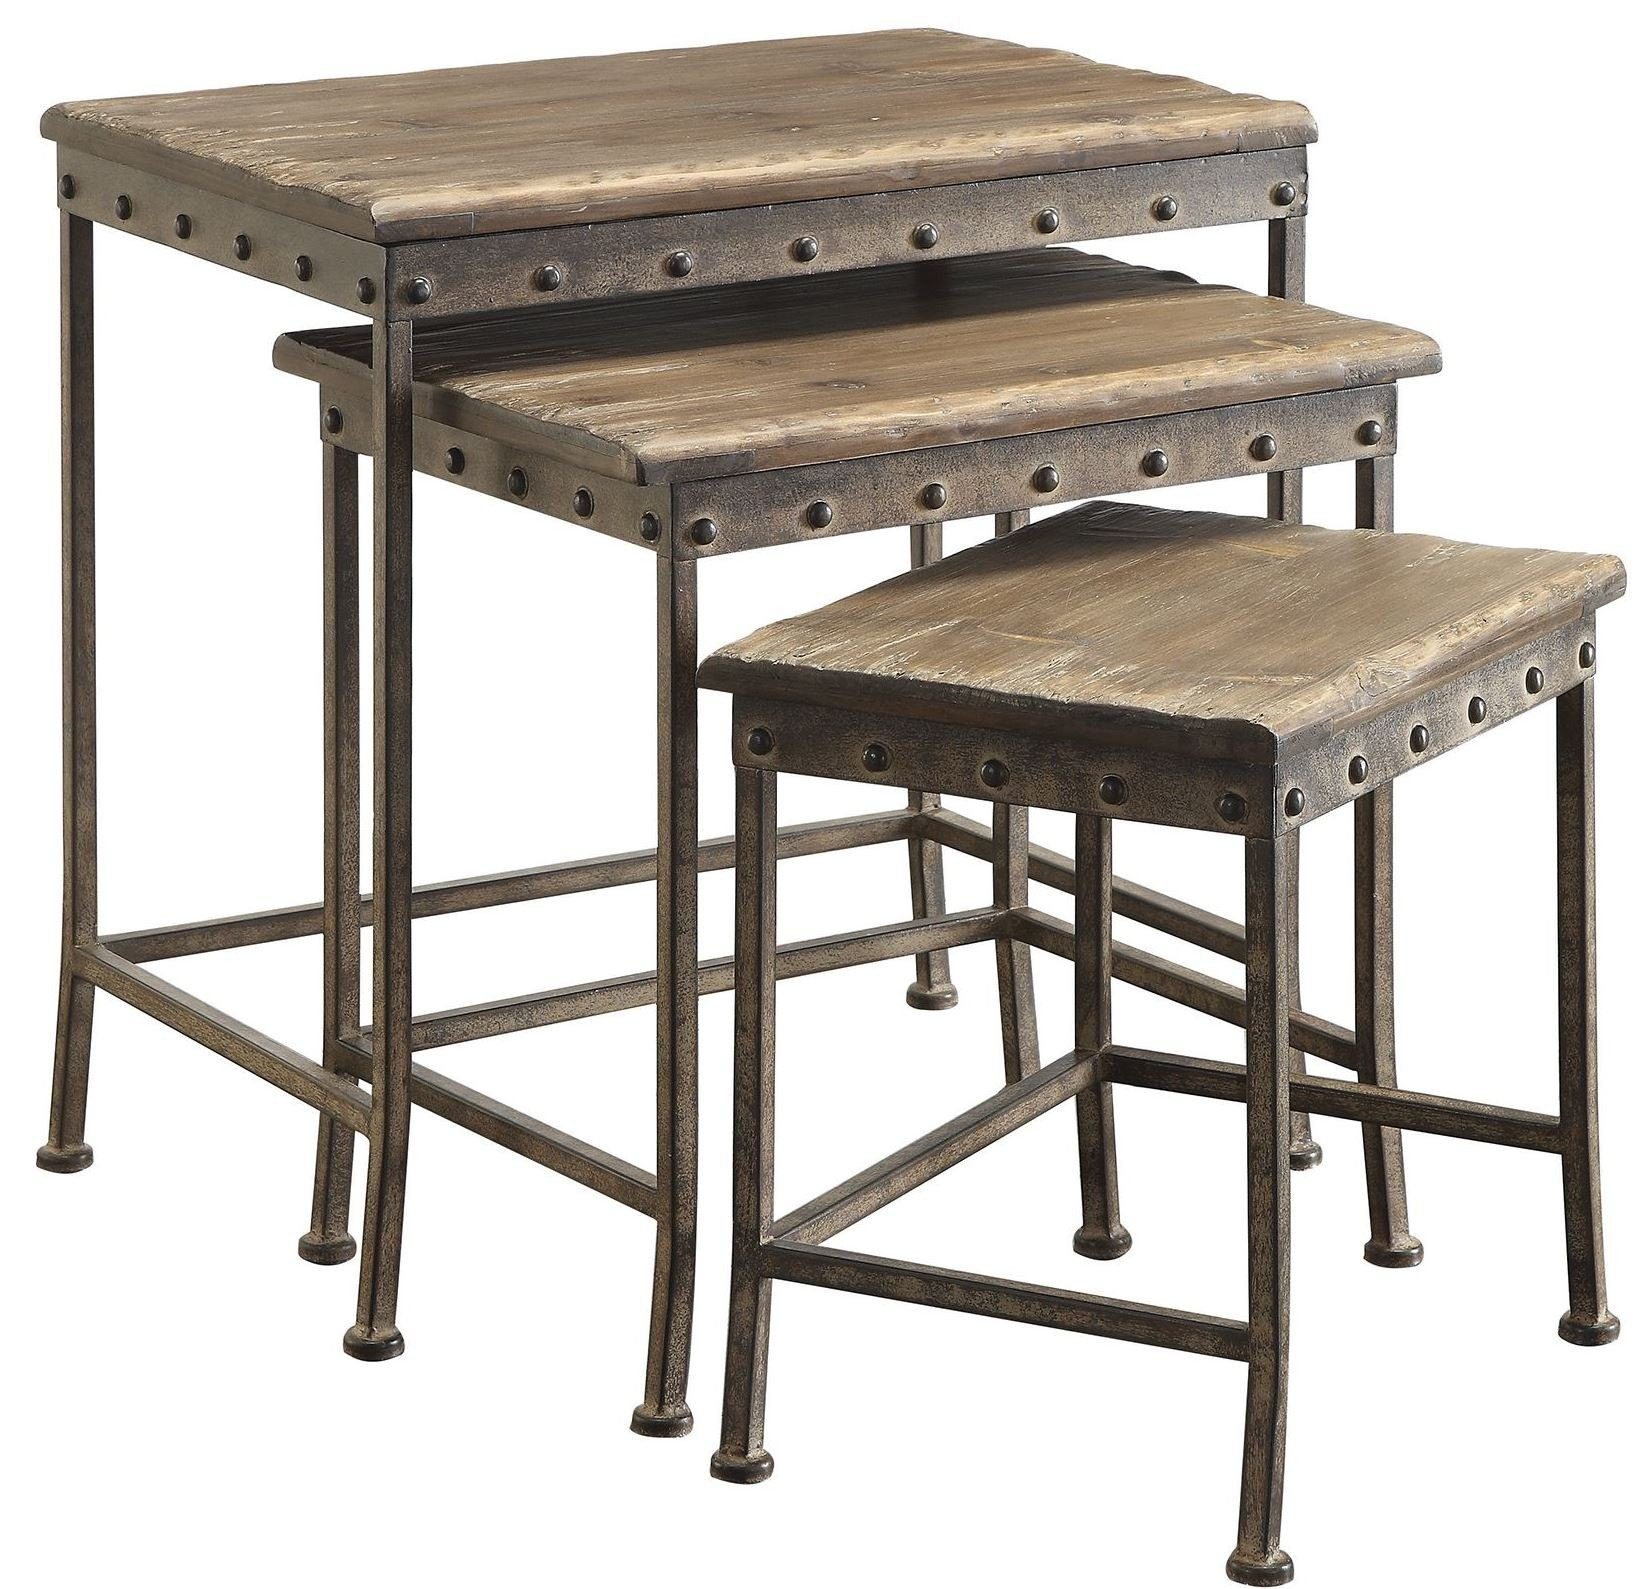 Coaster Home Furnishings 901373 Coaster Industrial Rustic Brown 3-Piece Nesting Table Set by Coaster Home Furnishings